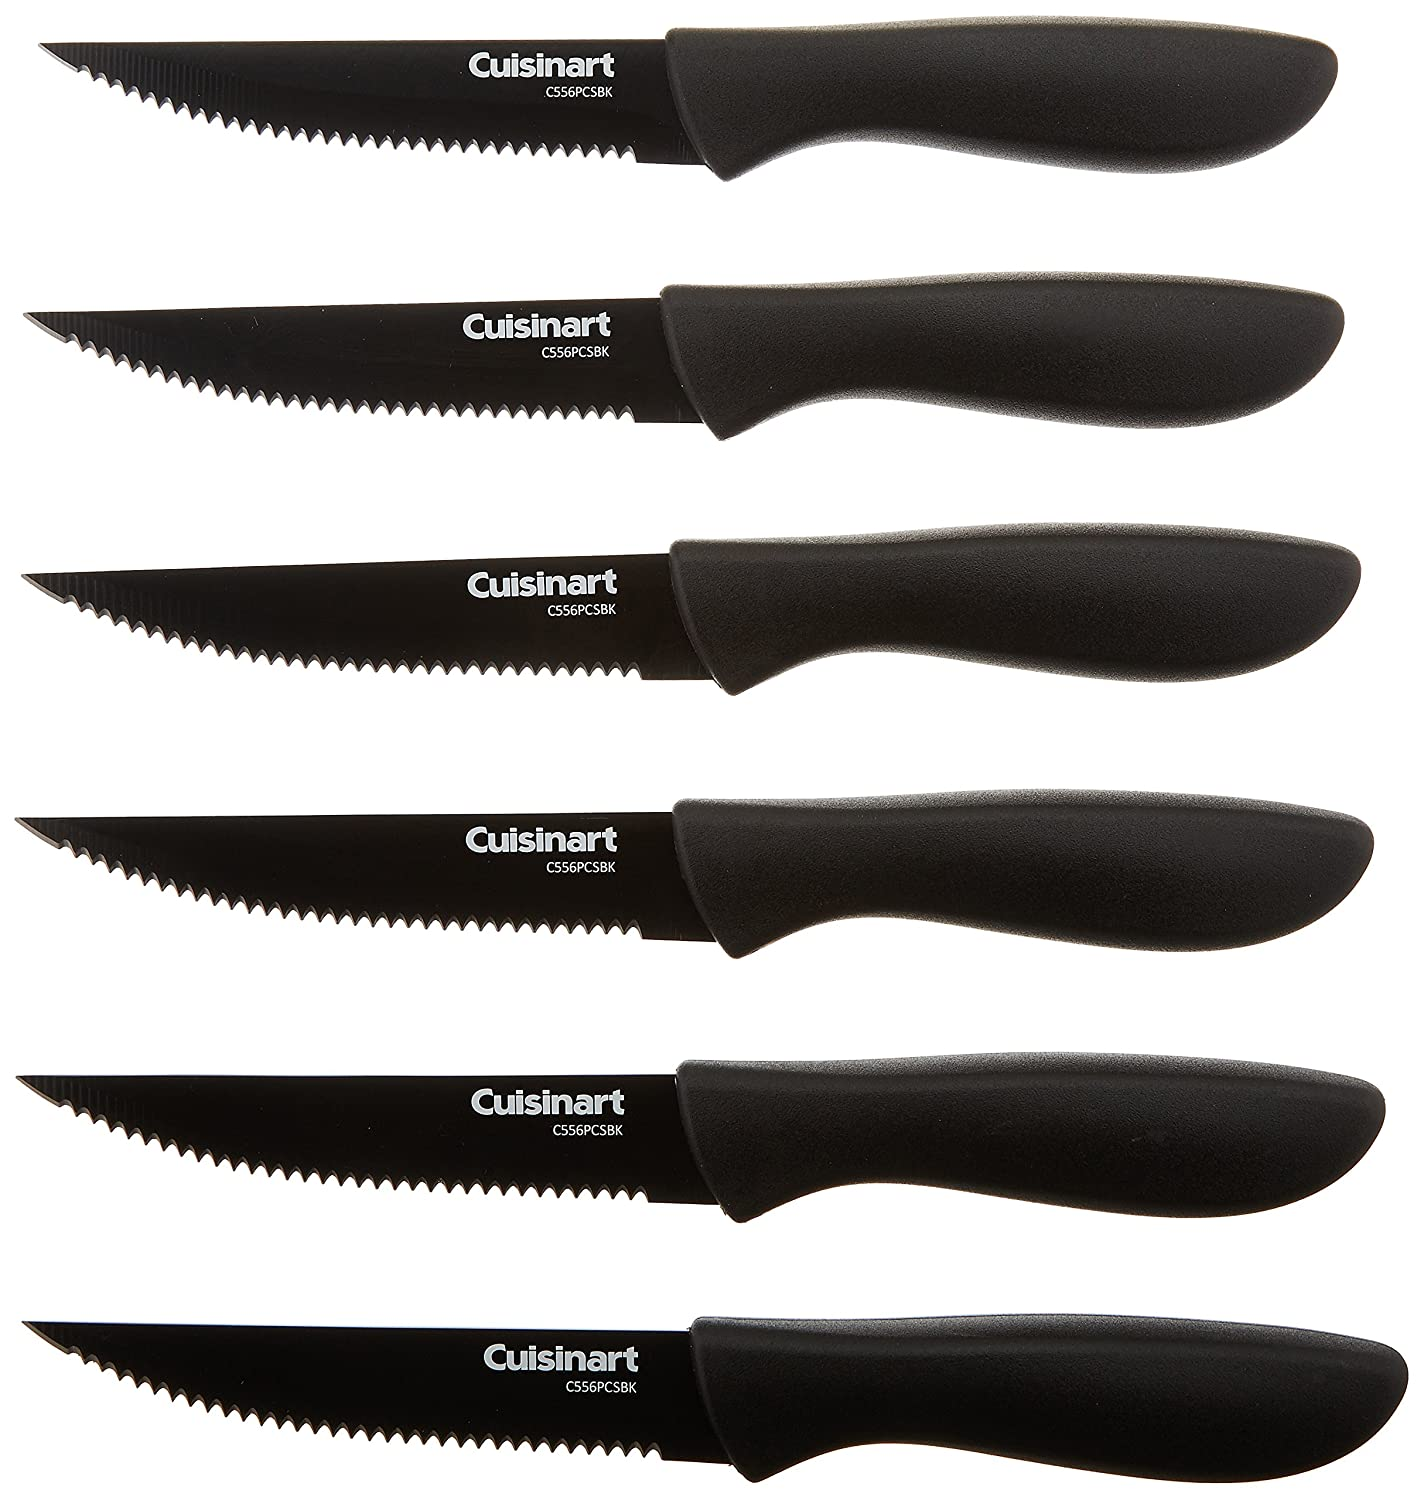 Cuisinart C55-6PCSBK Advantage Color Collection 6-Piece Ceramic Coated Steak Knife Set, Black